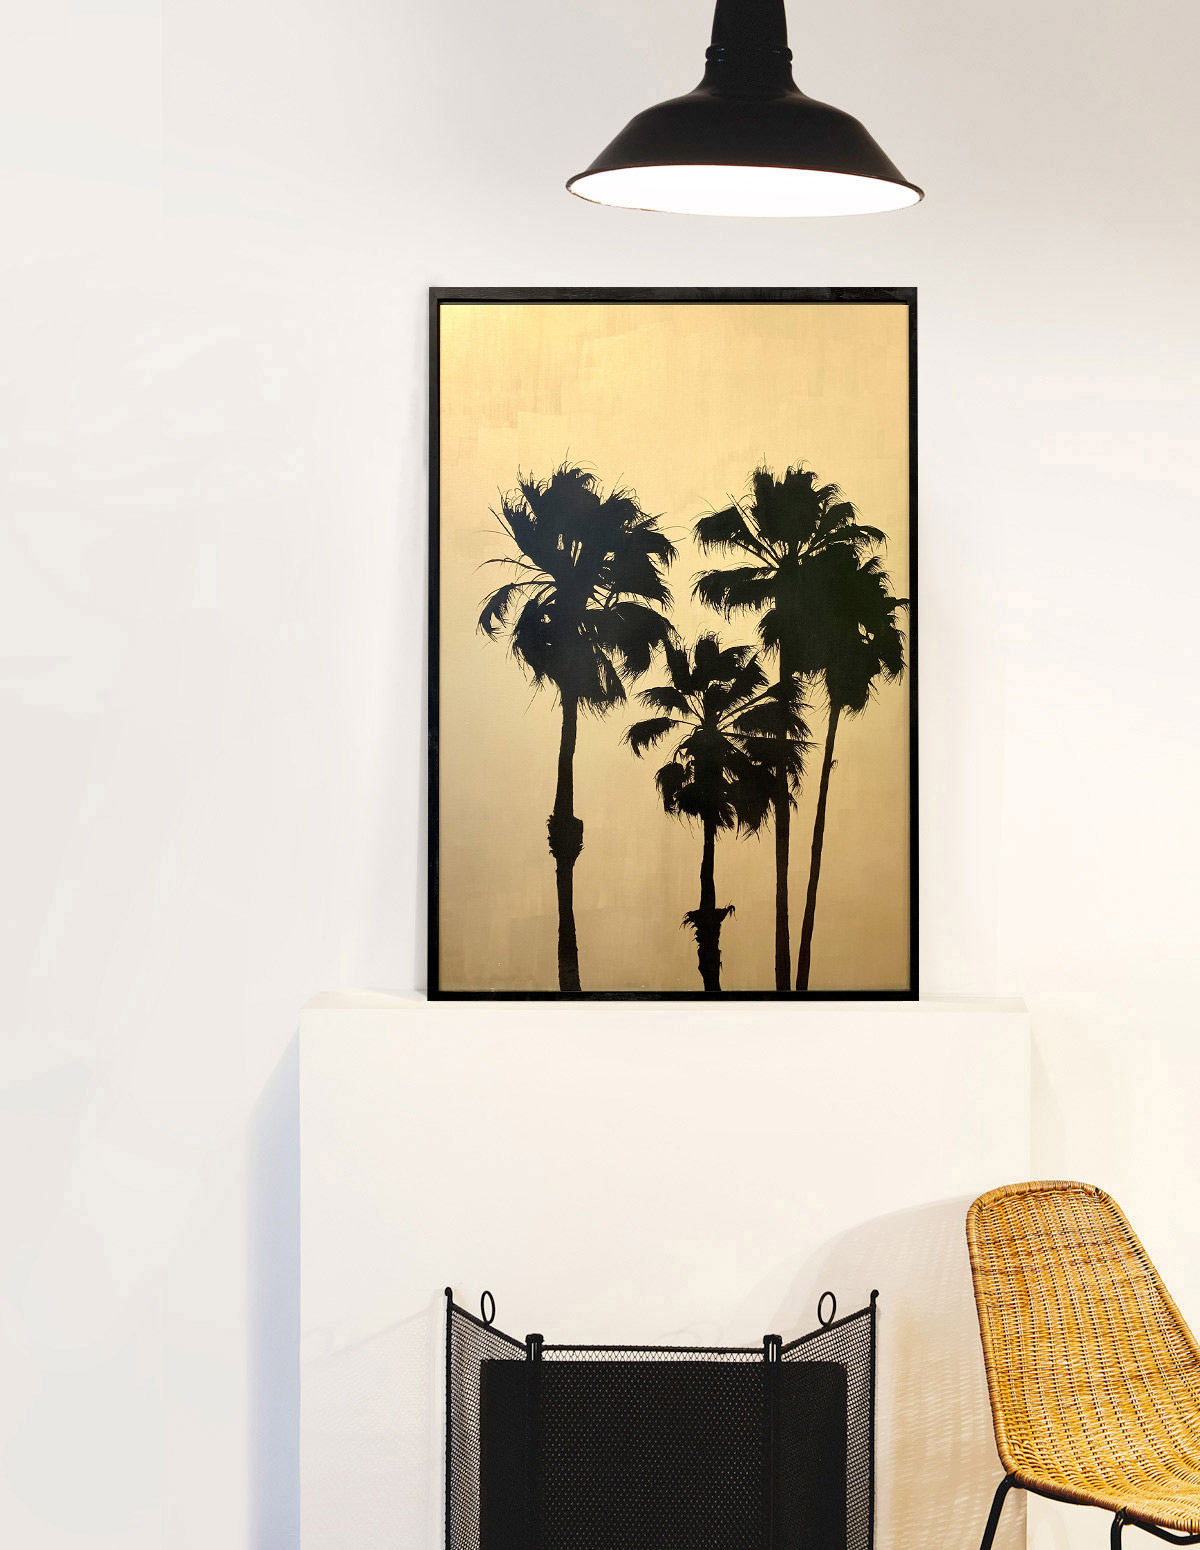 Grands palmtrees IV - Tableau- Hubert Jouzeau